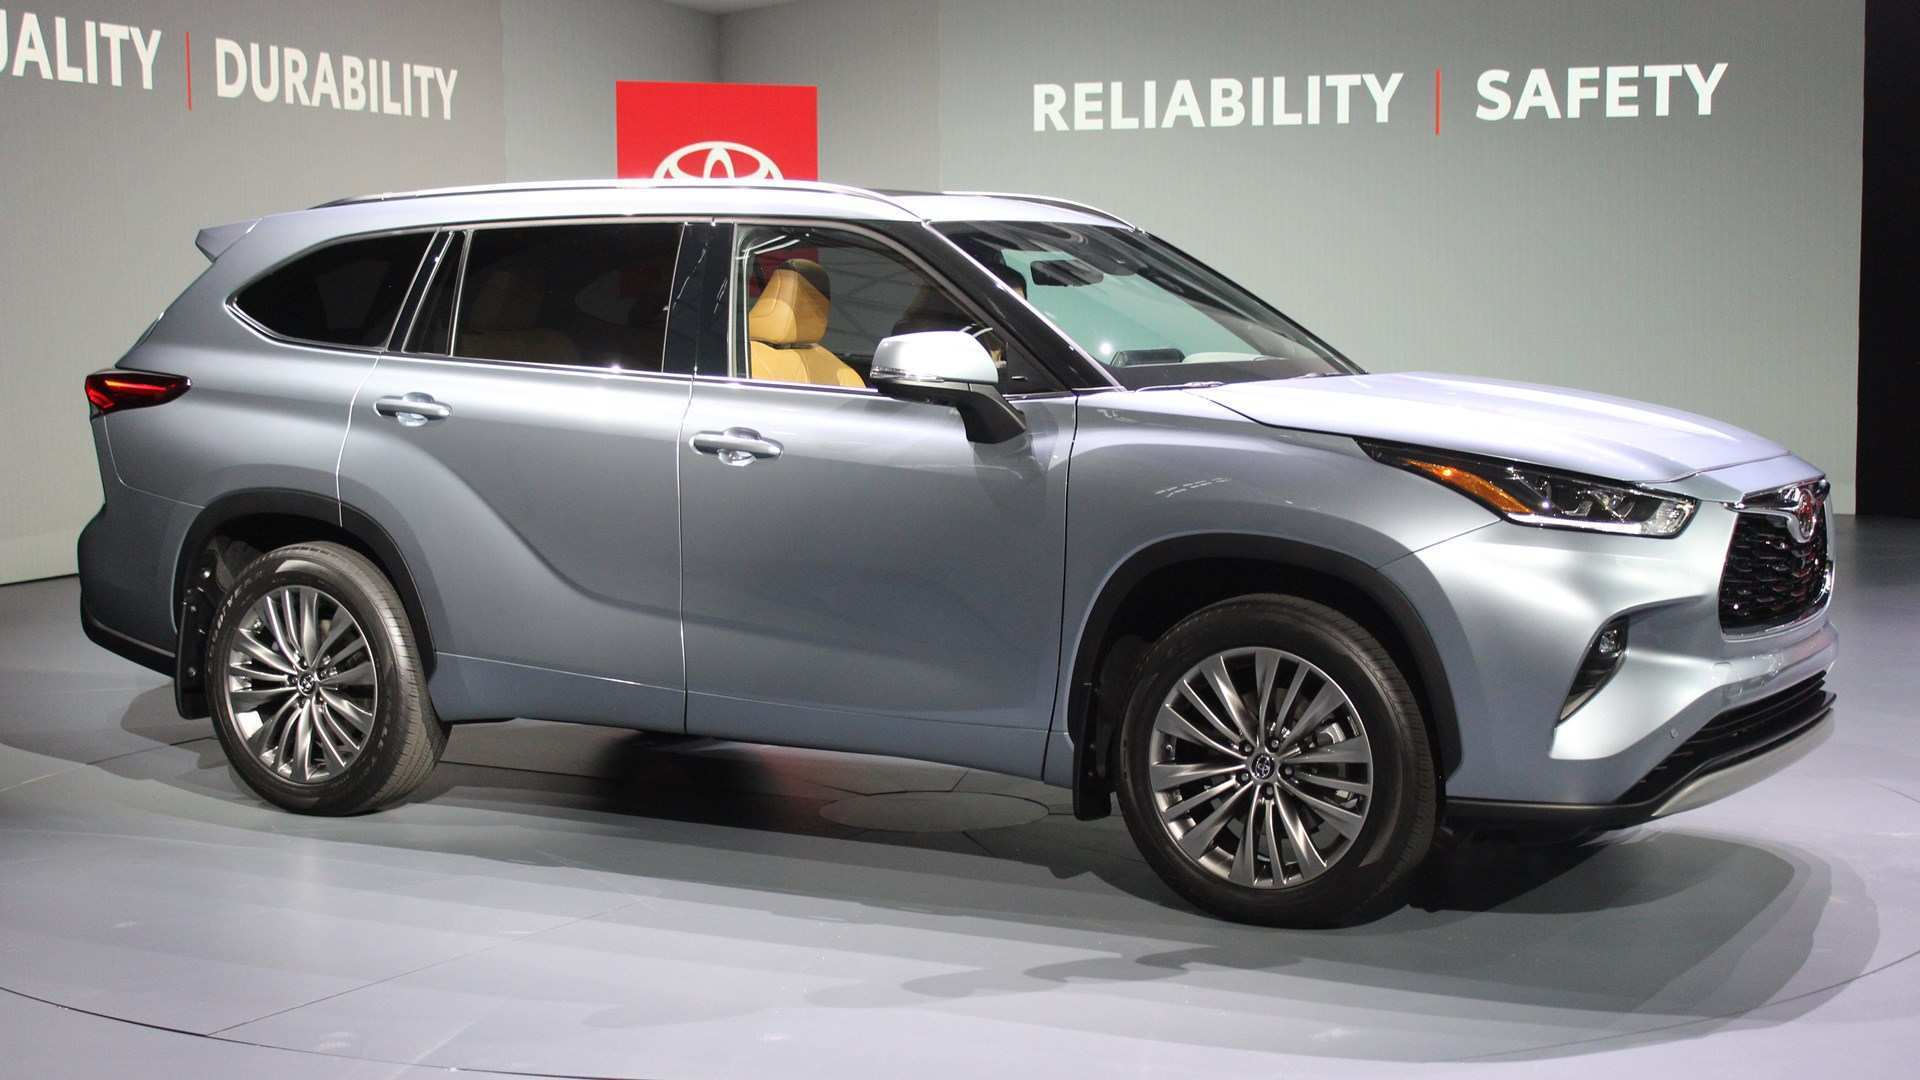 57 The Best Toyota Highlander 2020 Release Date Performance